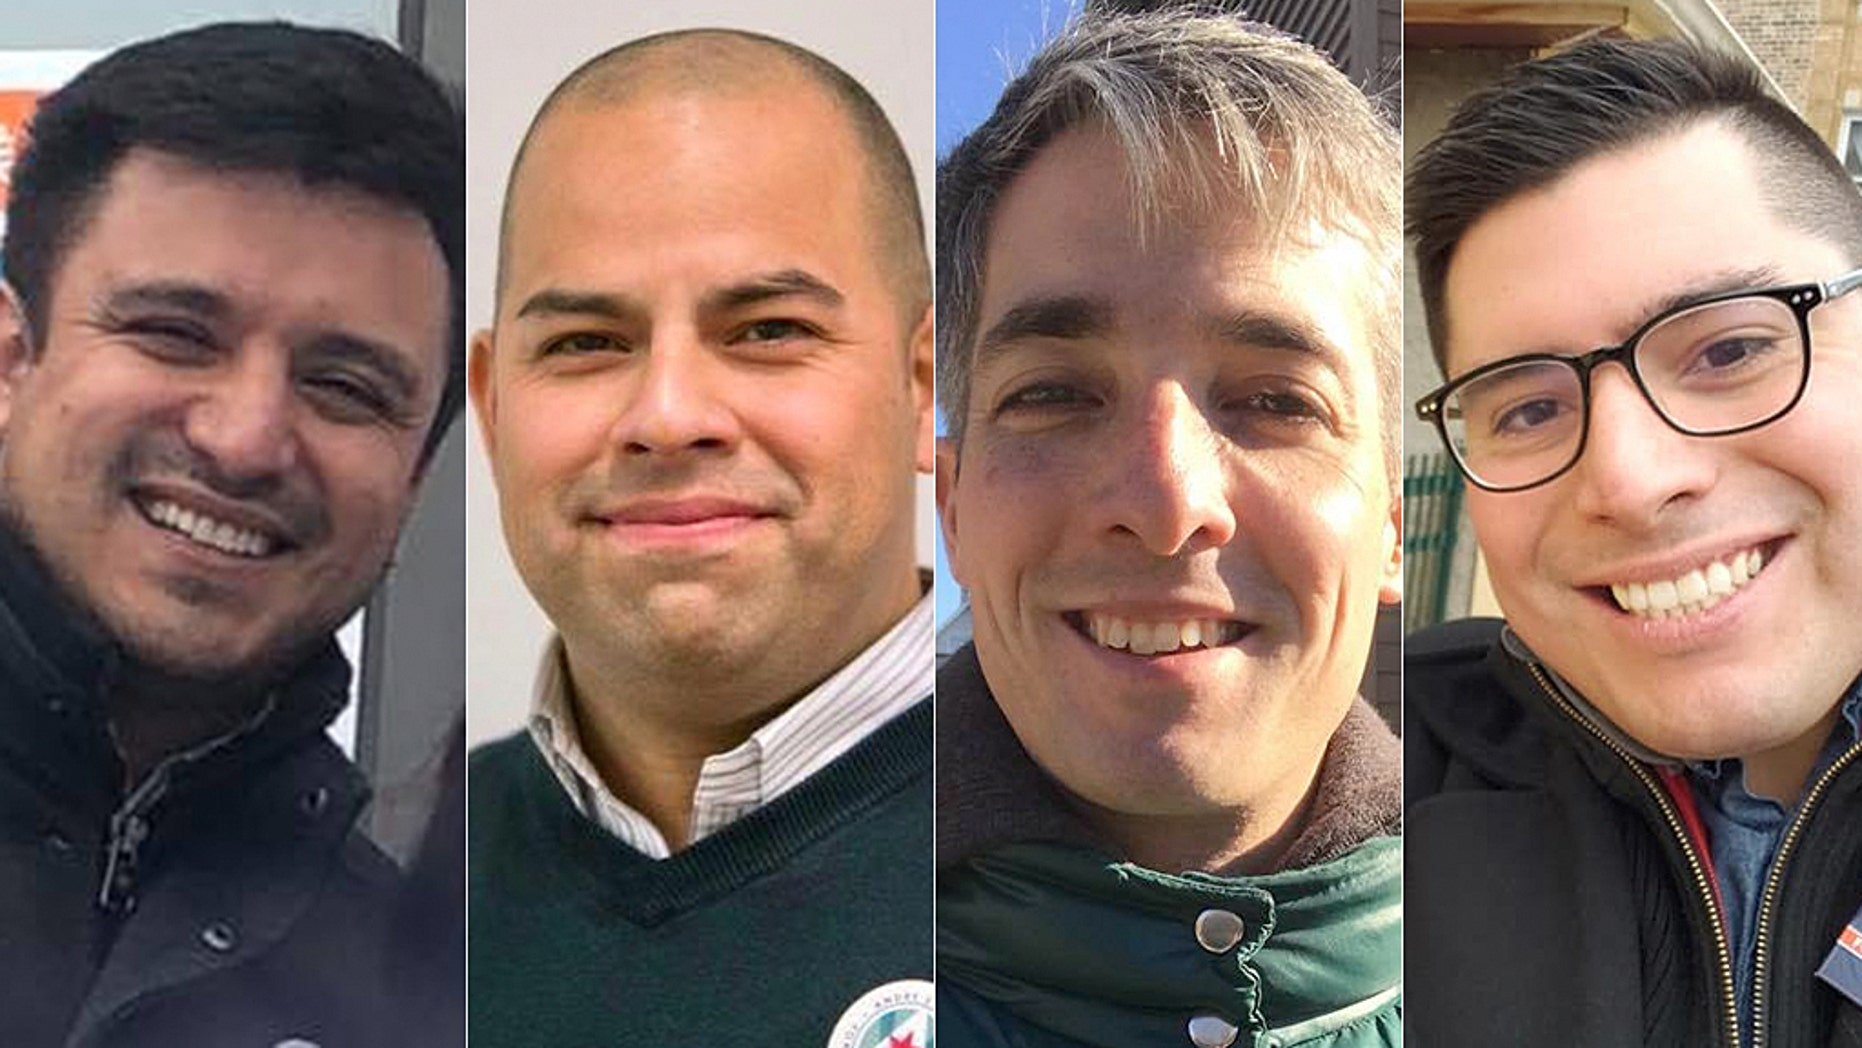 Democratic socialists Byron Sigcho-Lopez, Andre Vasquez, Daniel La Spata and Carlos Ramirez-Rosa (L-R) have all won seats on Chicago's City Council.